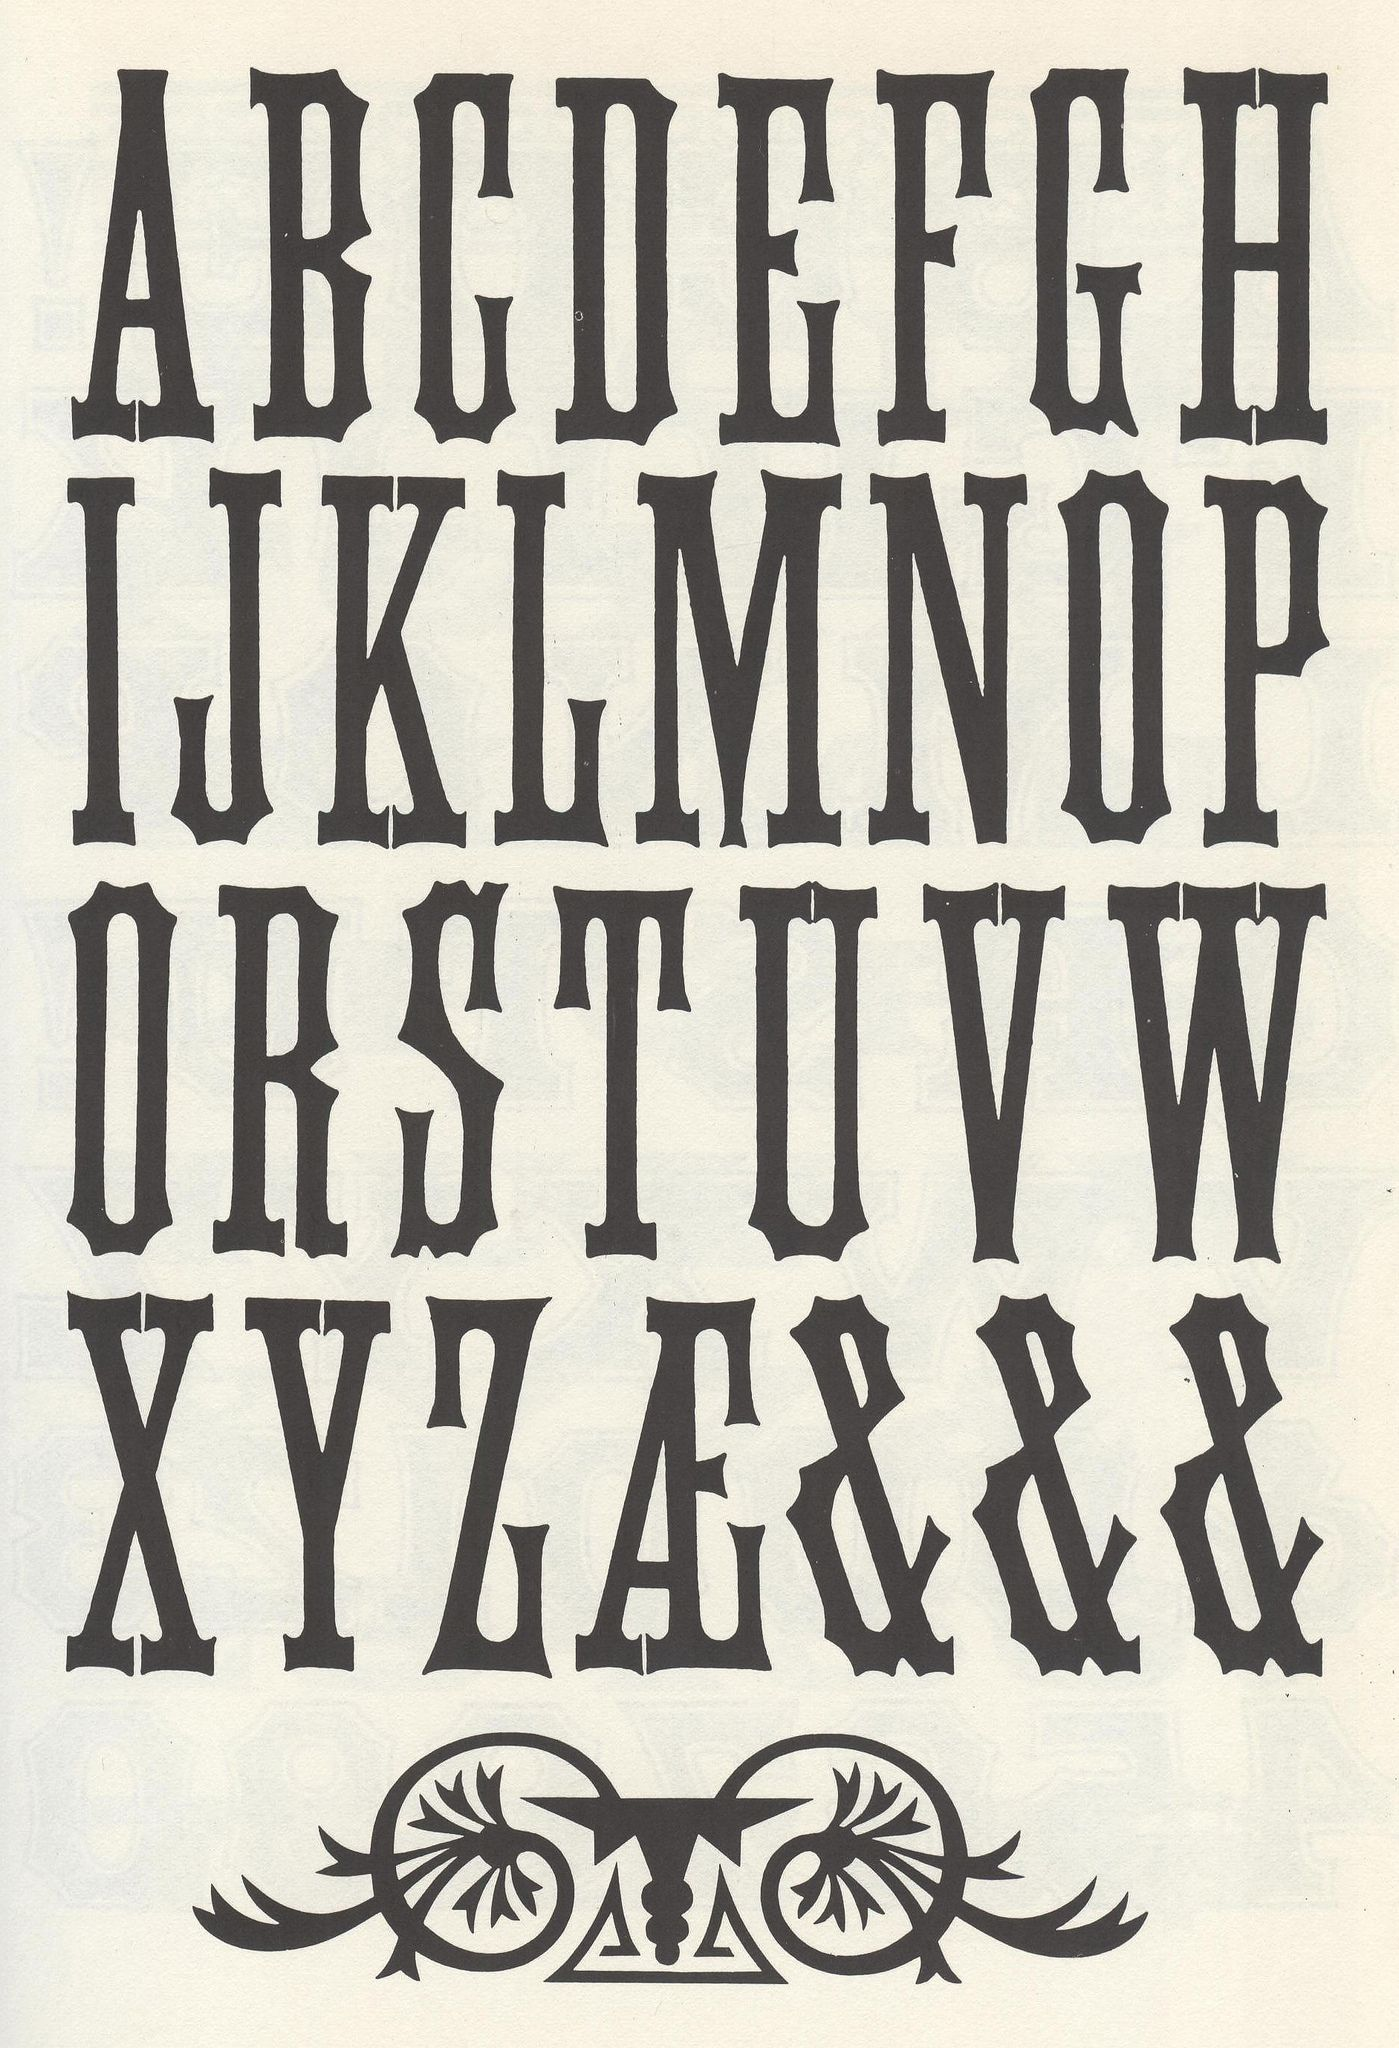 Cool Font Alphabets I Could Interpret Into My Poster